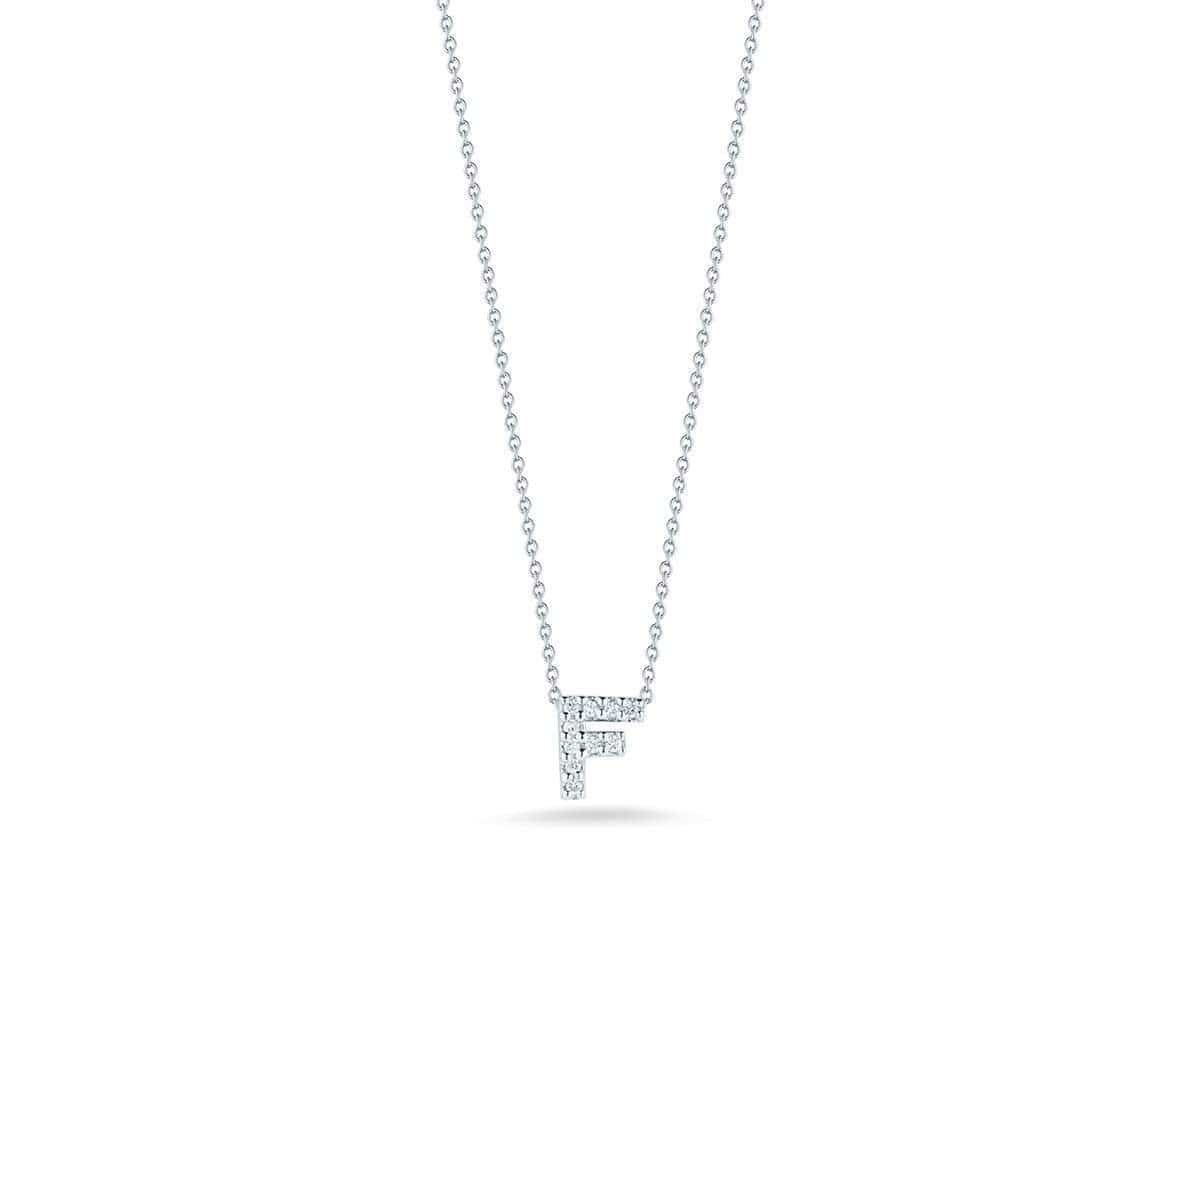 18k White Gold & Diamond Love Letter F Necklace - 001634AWCHXF-Roberto Coin-Renee Taylor Gallery